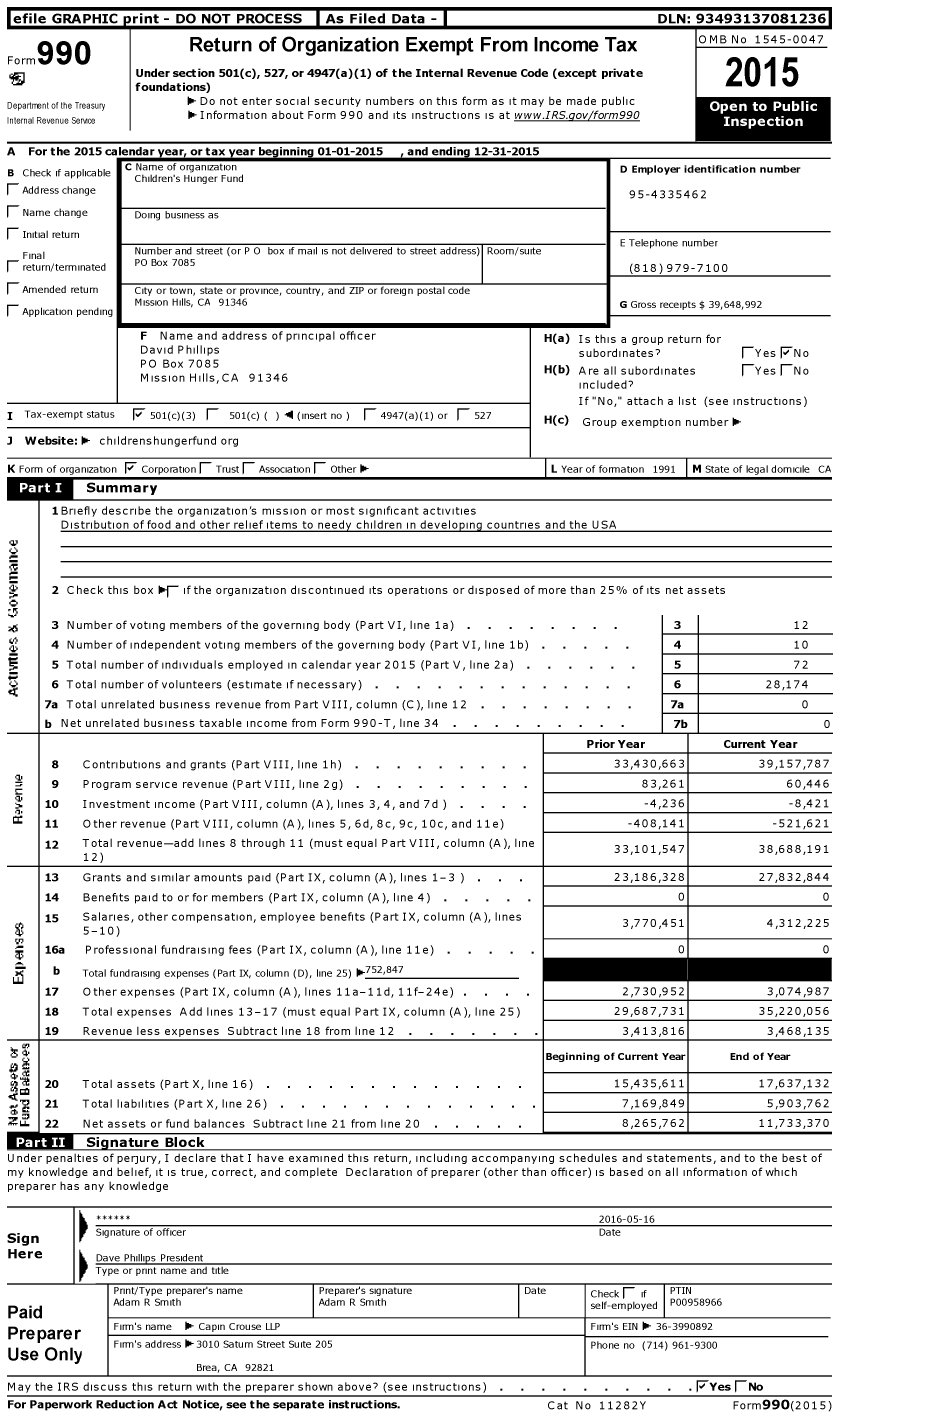 Image of first page of 2015 Form 990 for Children's Hunger Fund